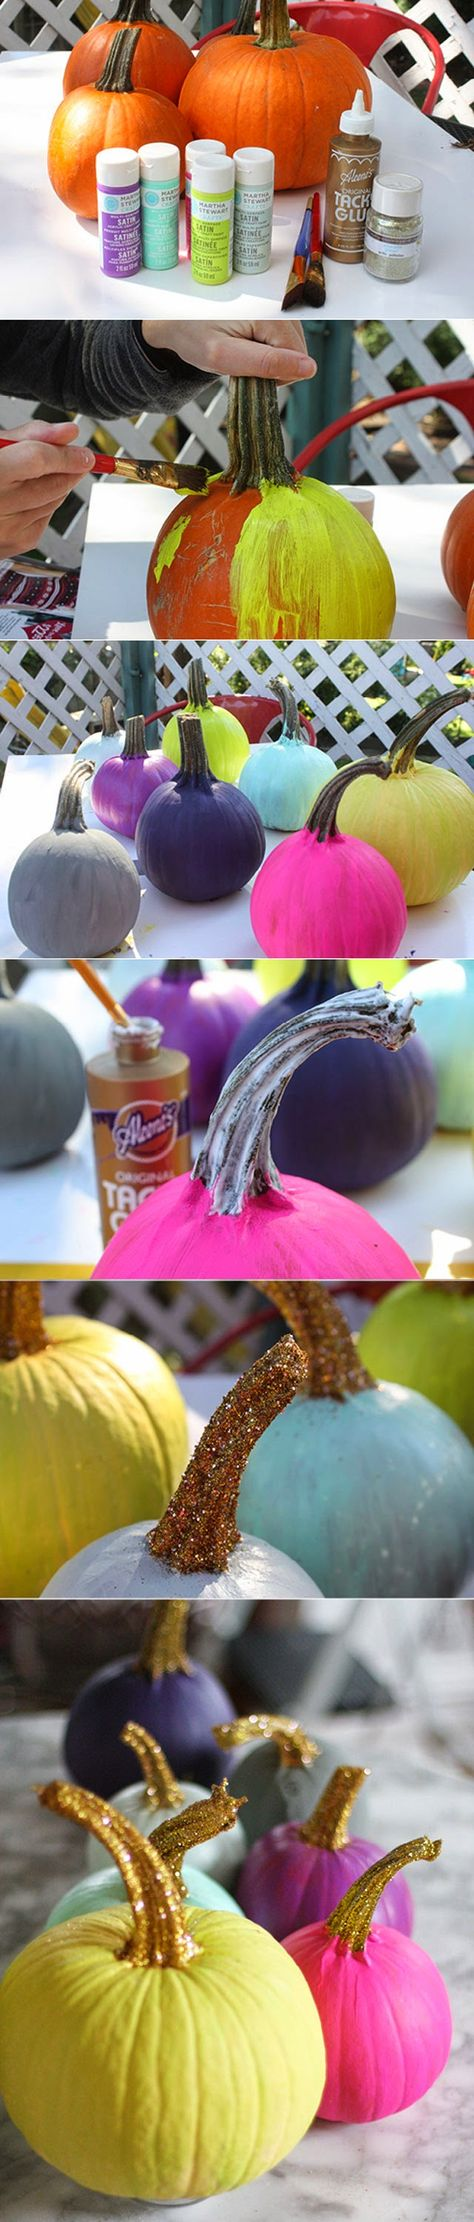 DIY Painted Pumpkins with Glittered Stems by Aunt Peaches #michaelsmakers